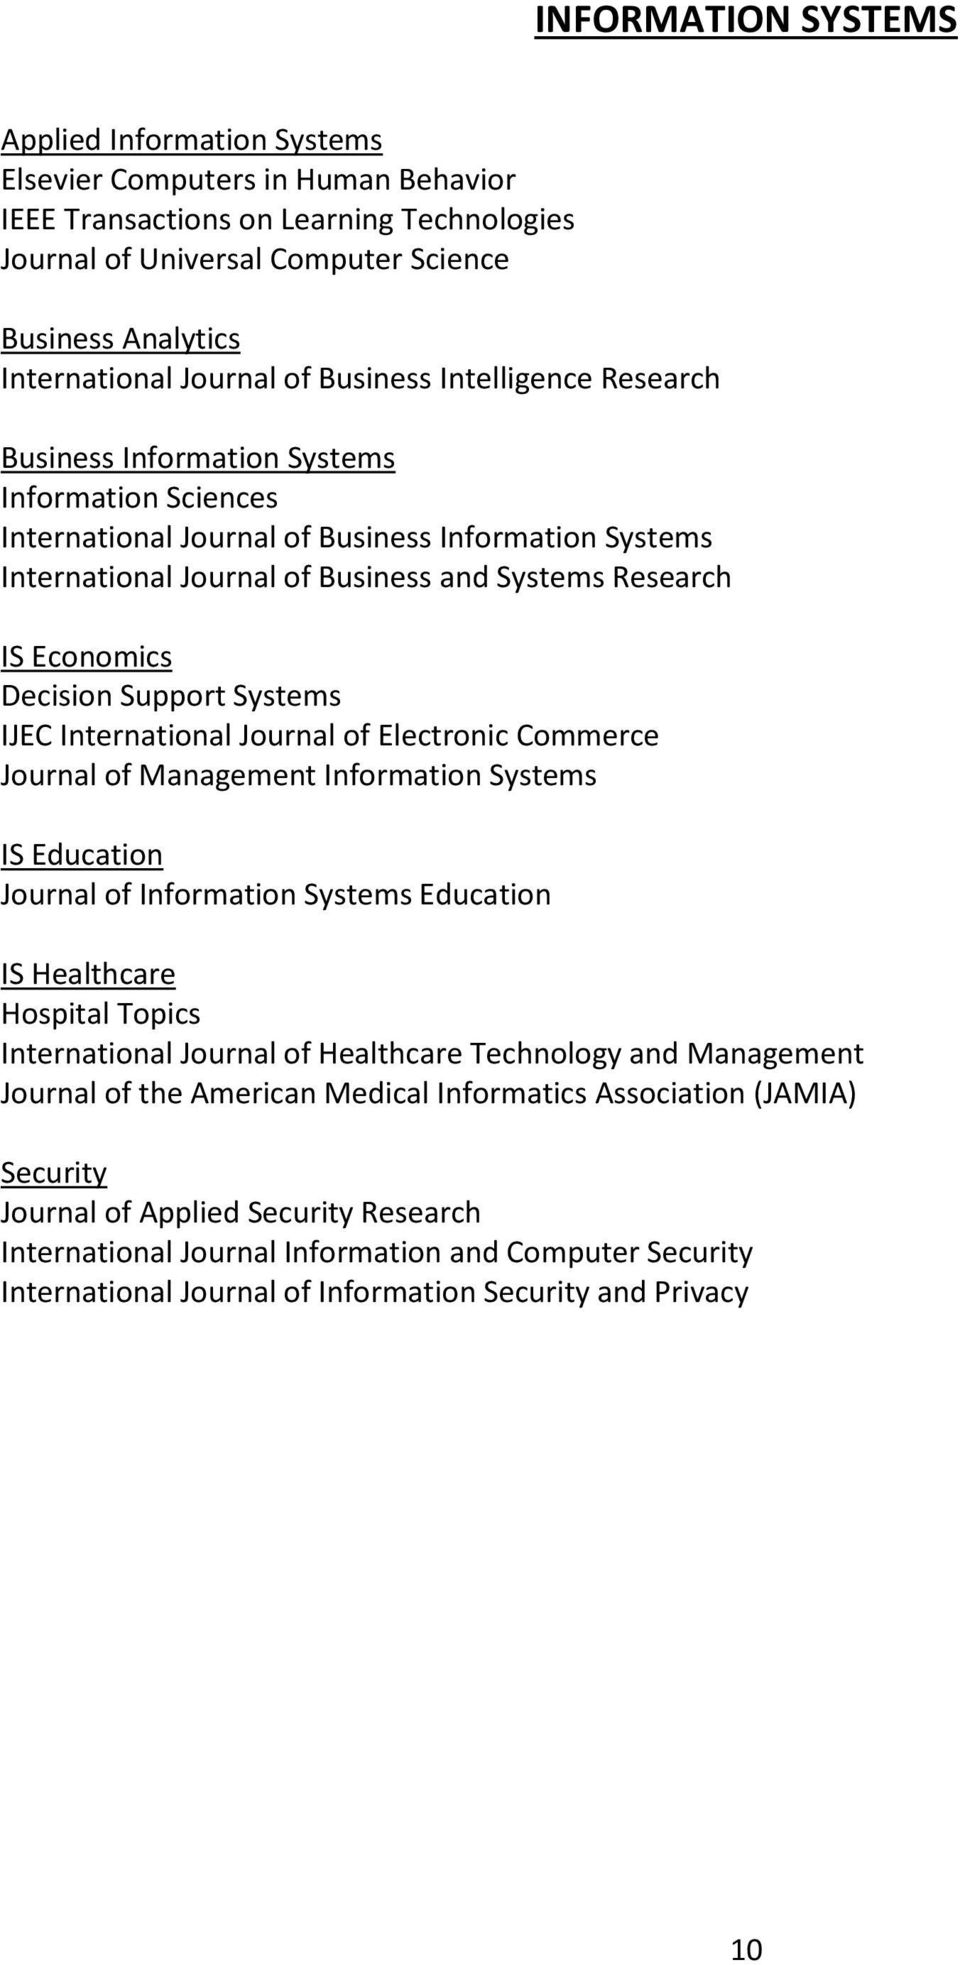 Research IS Economics Decision Support Systems IJEC International Journal of Electronic Commerce Journal of Management Information Systems IS Education Journal of Information Systems Education IS